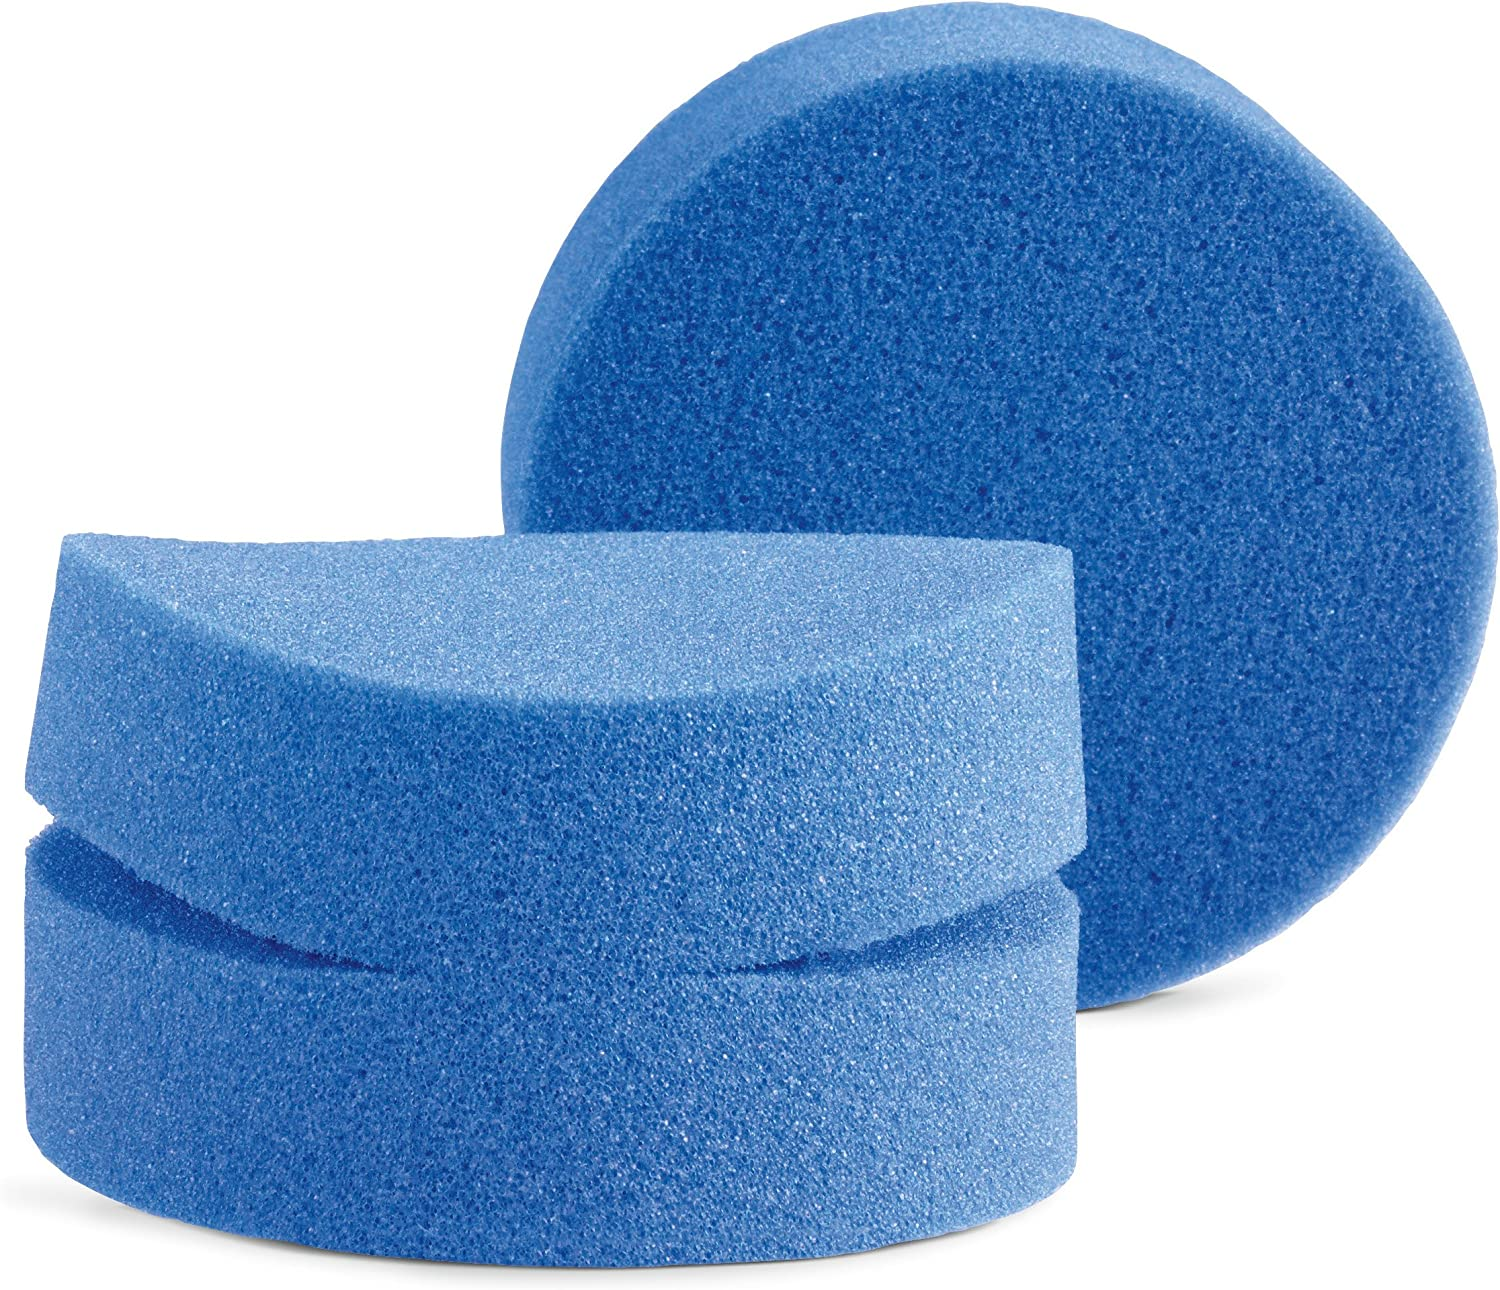 B003POIYJM Griot's Garage 11205 Blue Detail Sponge (Set of 2) 91mC6CDMgnL